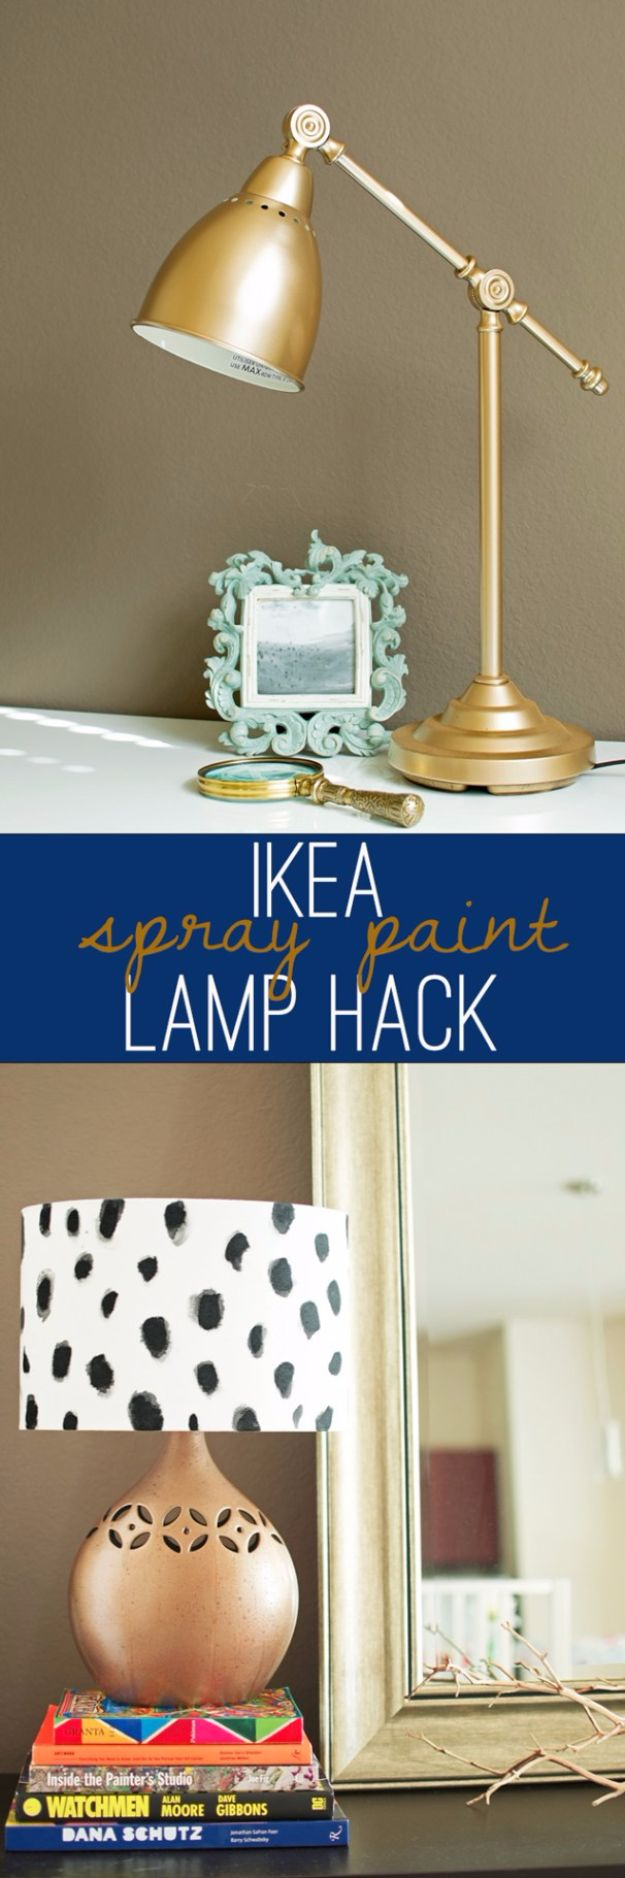 IKEA Hacks For The Bedroom - DIY Spotted Copper Lamp - Best IKEA Furniture Hack Ideas for Bed, Storage, Nightstand, Closet System and Storage, Dresser, Vanity, Wall Art and Kids Rooms - Easy and Cheap DIY Projects for Affordable Room and Home Decor #ikeahacks #diydecor #bedroomdecor